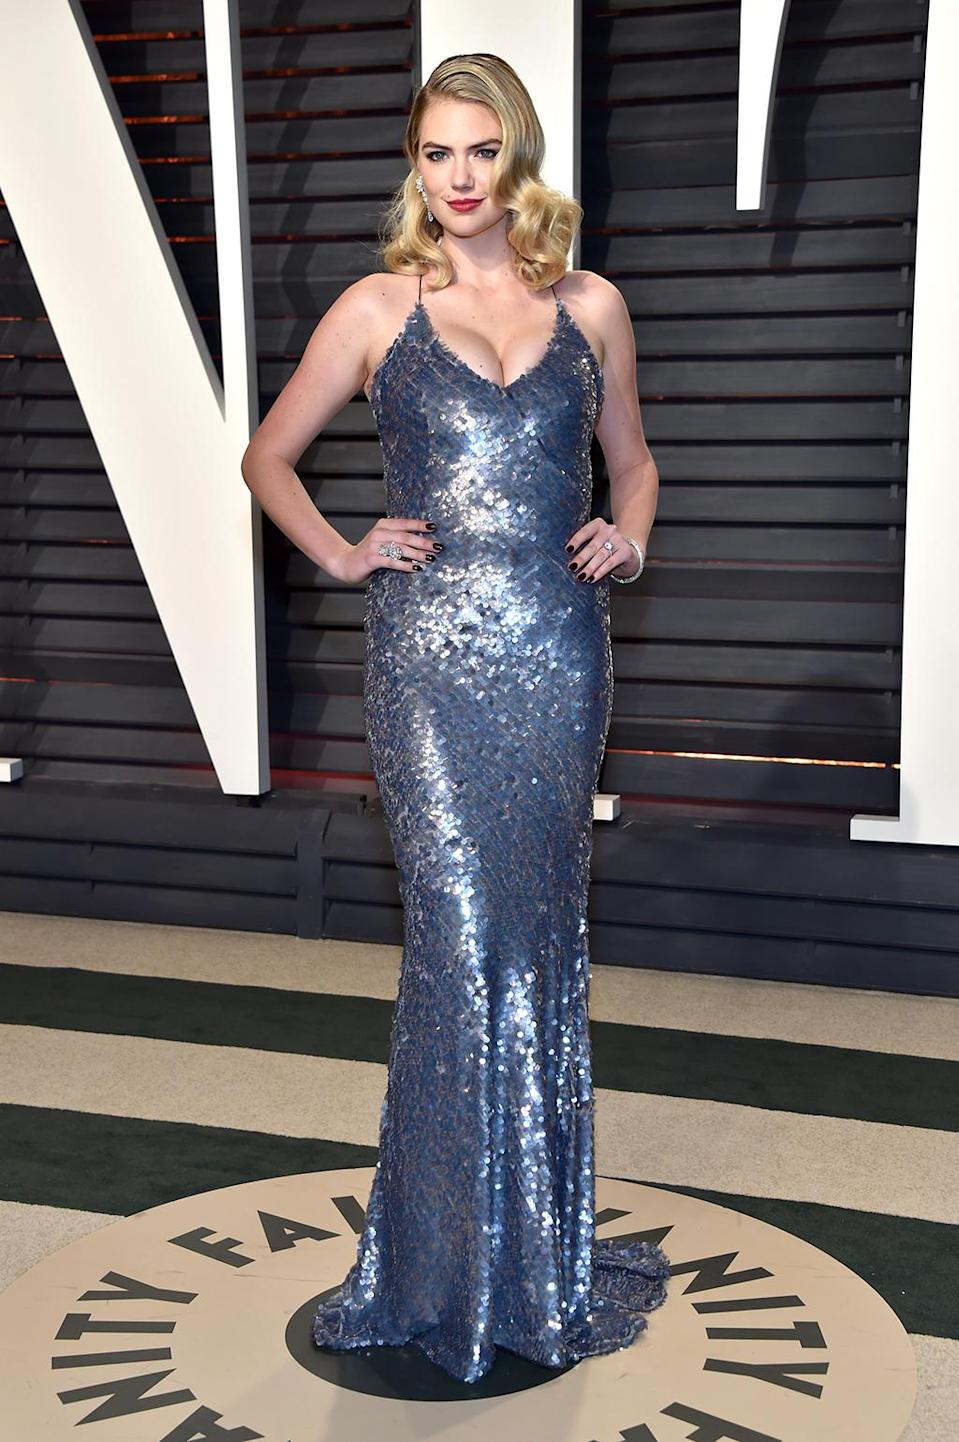 <p>Kate Upton attends the 2017 Vanity Fair Oscar Party hosted by Graydon Carter at Wallis Annenberg Center for the Performing Arts on February 26, 2017 in Beverly Hills, California. (Photo by Pascal Le Segretain/Getty Images) </p>